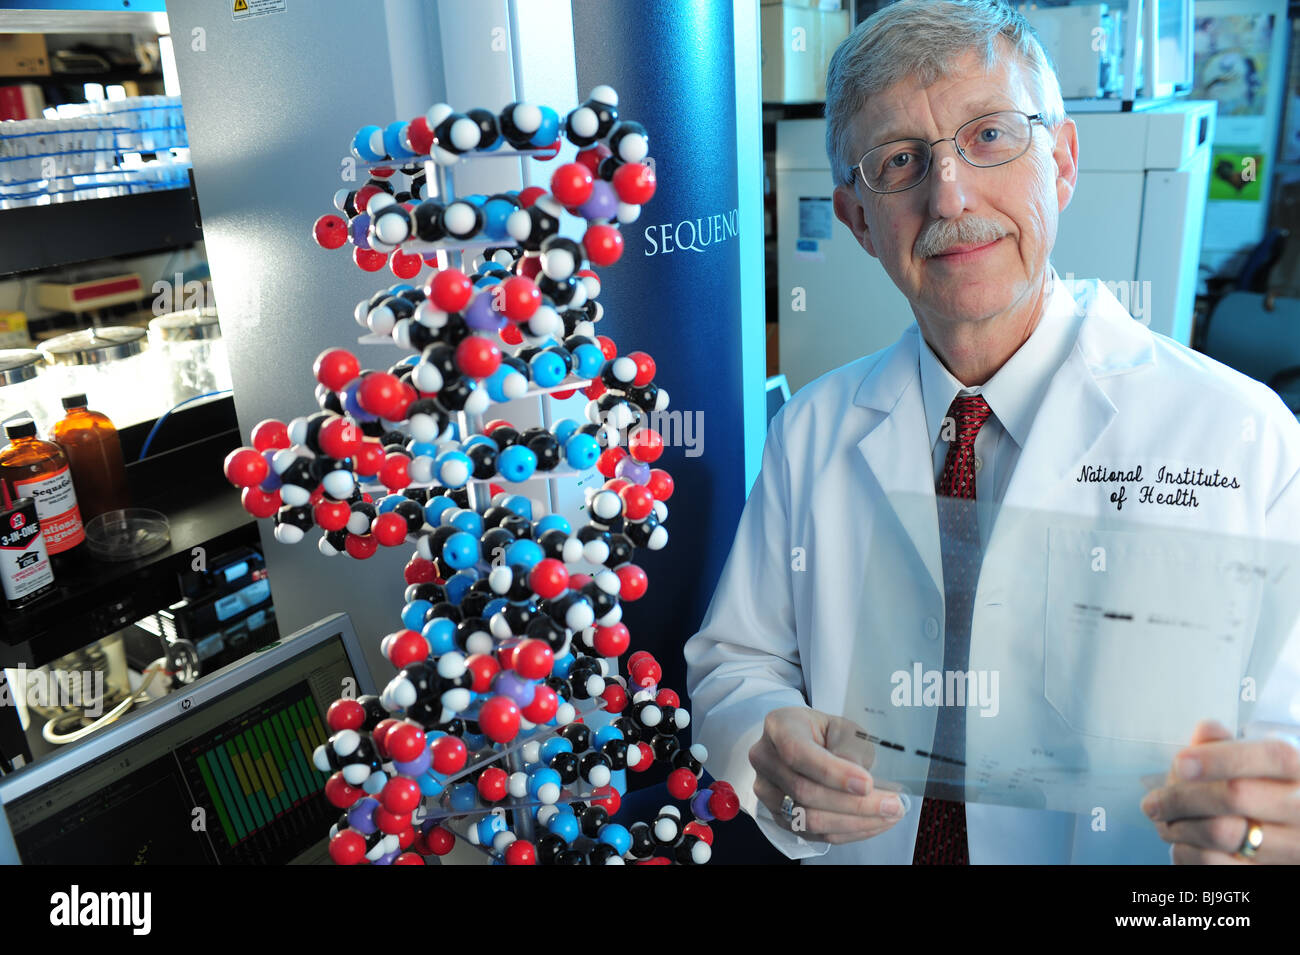 drfrancis-collins-former-director-of-the-human-genome-project-now-BJ9GTK.jpg